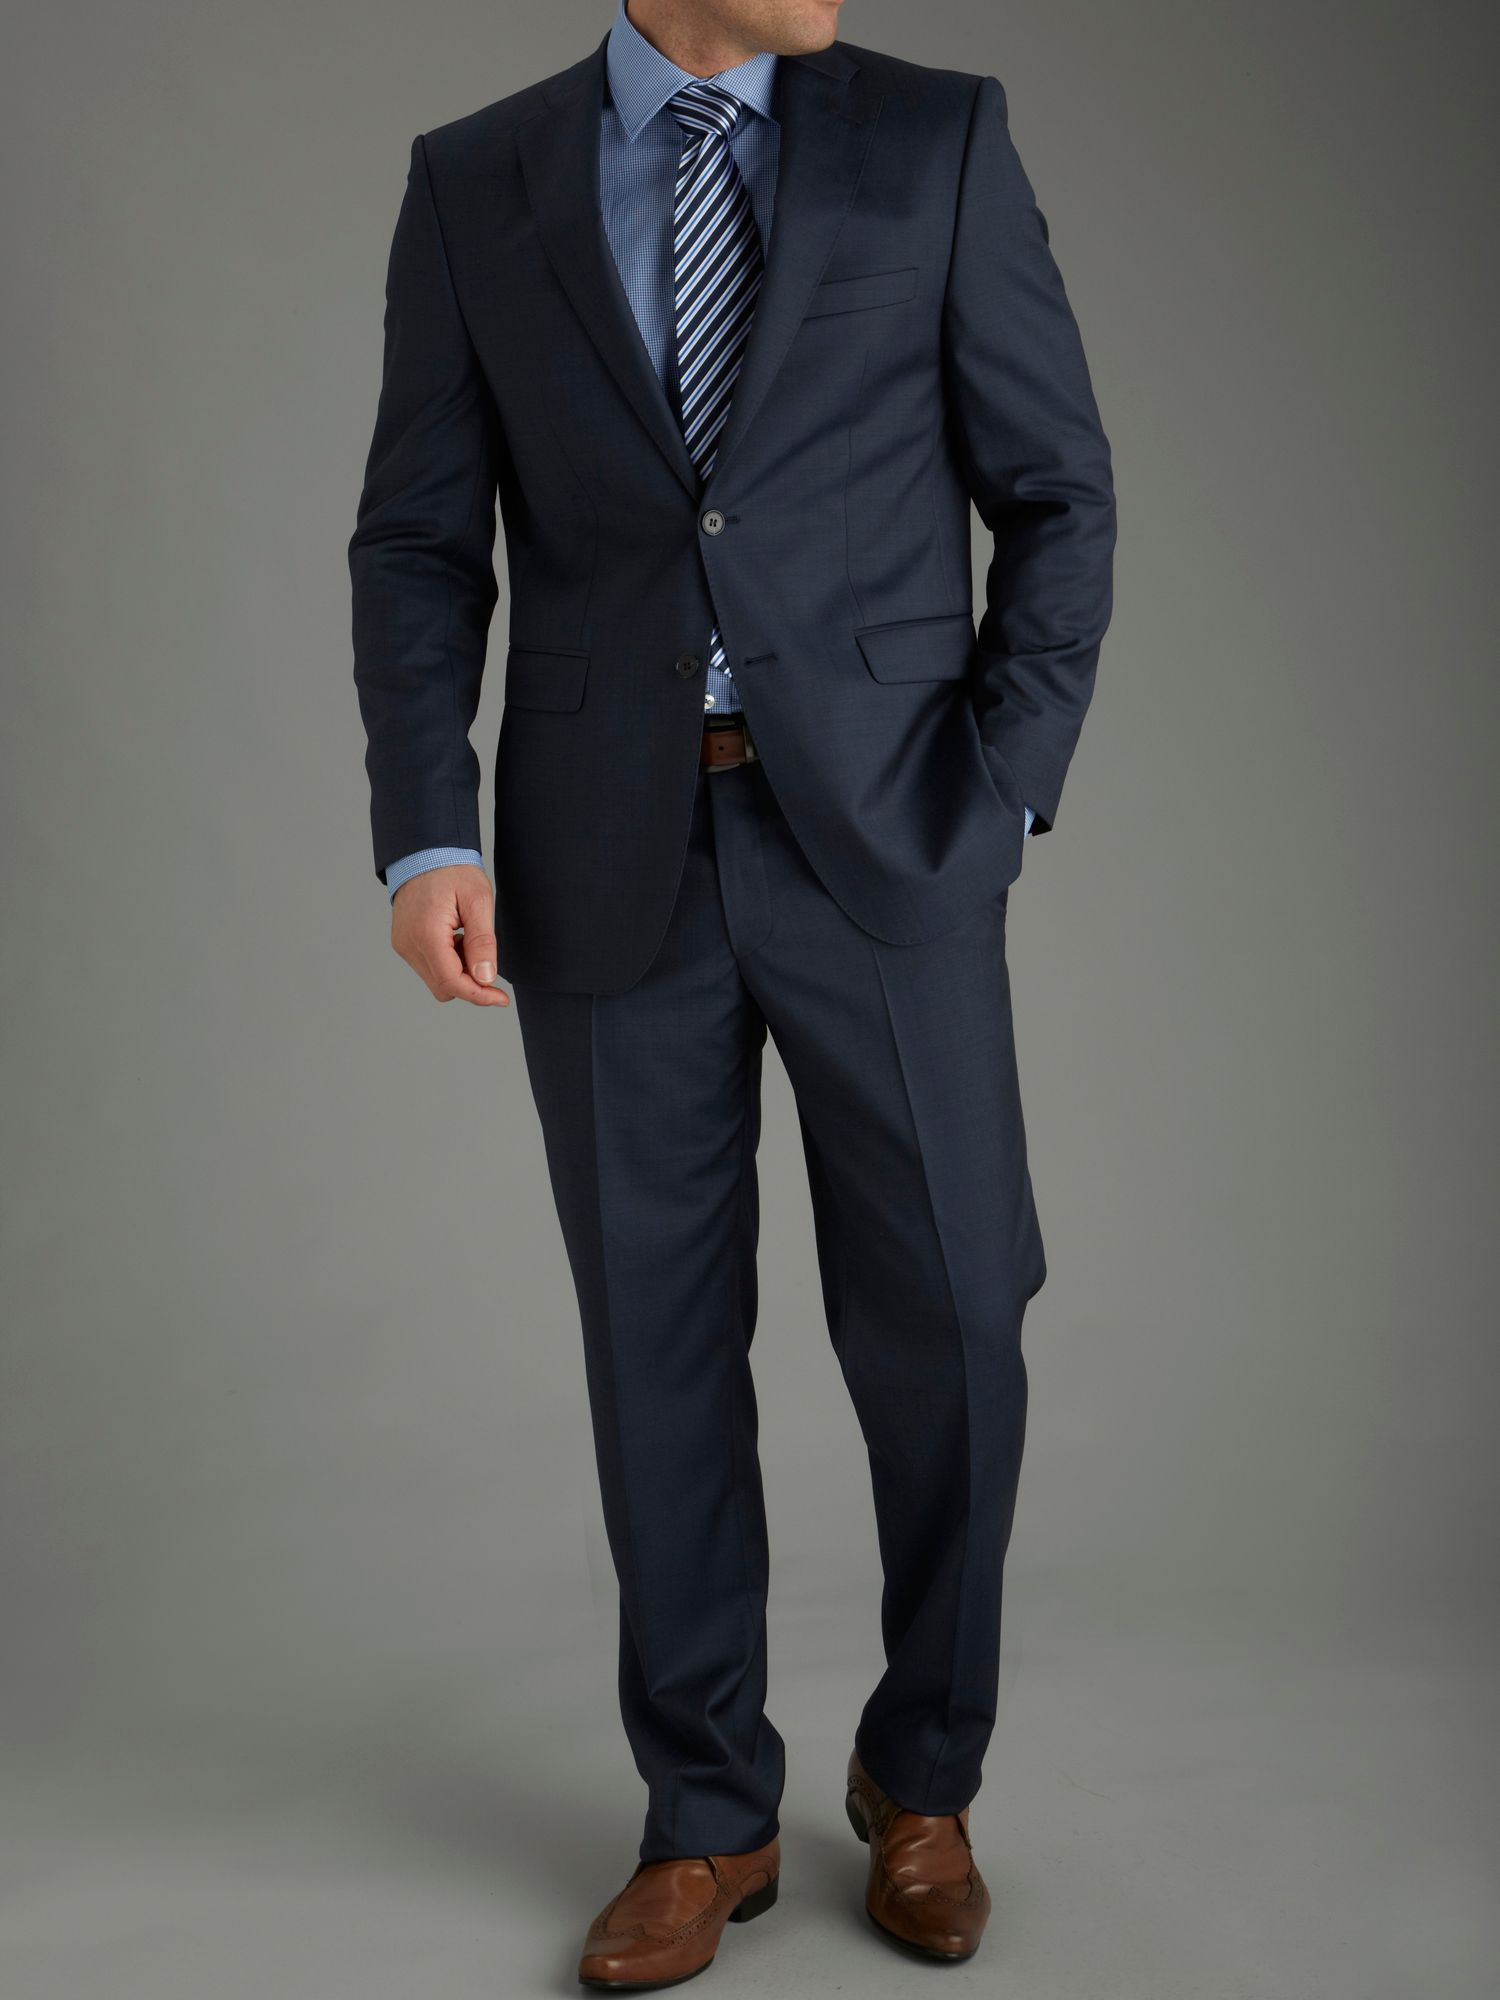 Cerruti navy superissimo suit